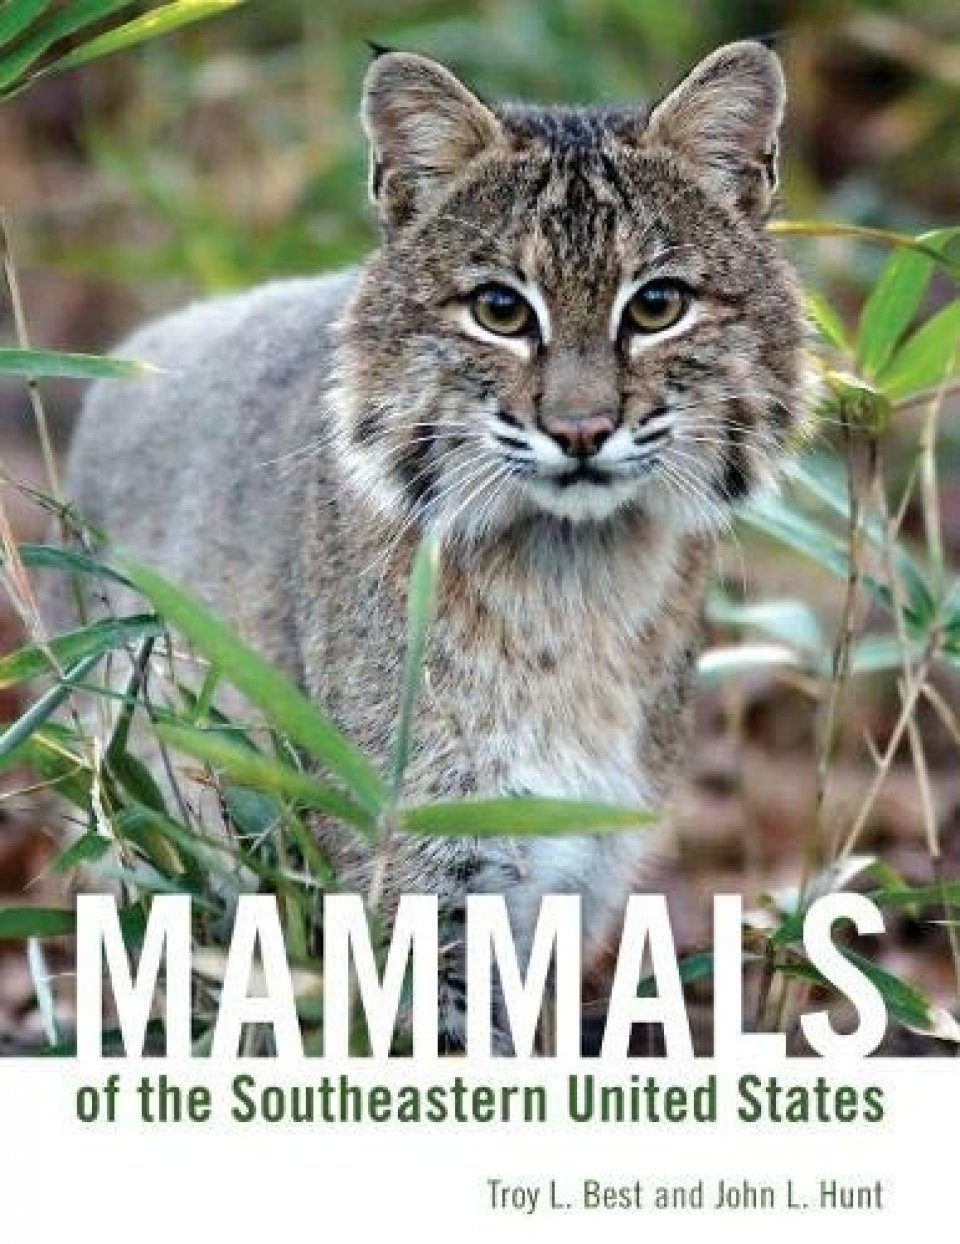 Mammals of the Southeastern United States